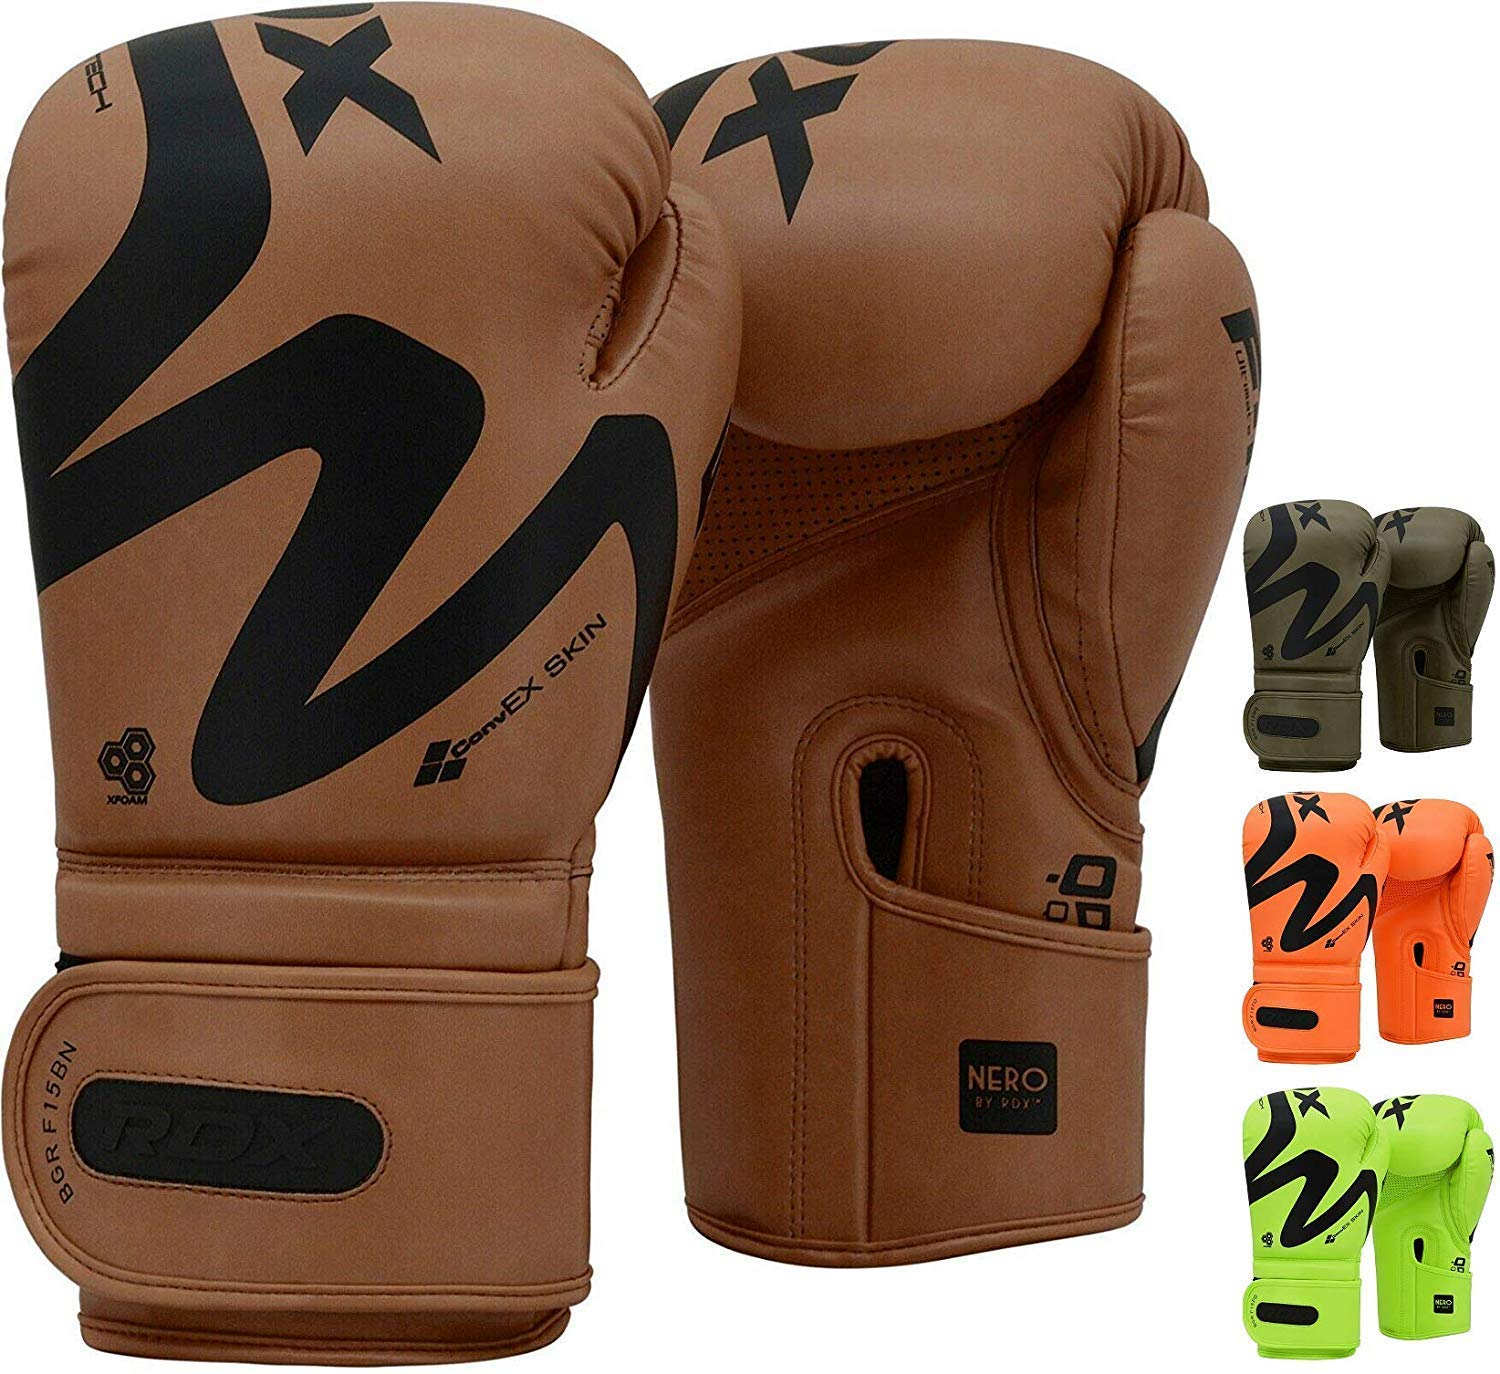 Double End Ball Punching Fight Gloves RDX Boxing Gloves Sparring and Muay Thai Maya Hide Leather Punch Bag MMA Focus Pads KARA Patent Pending Training Mitt for Kickboxing Thai Pad